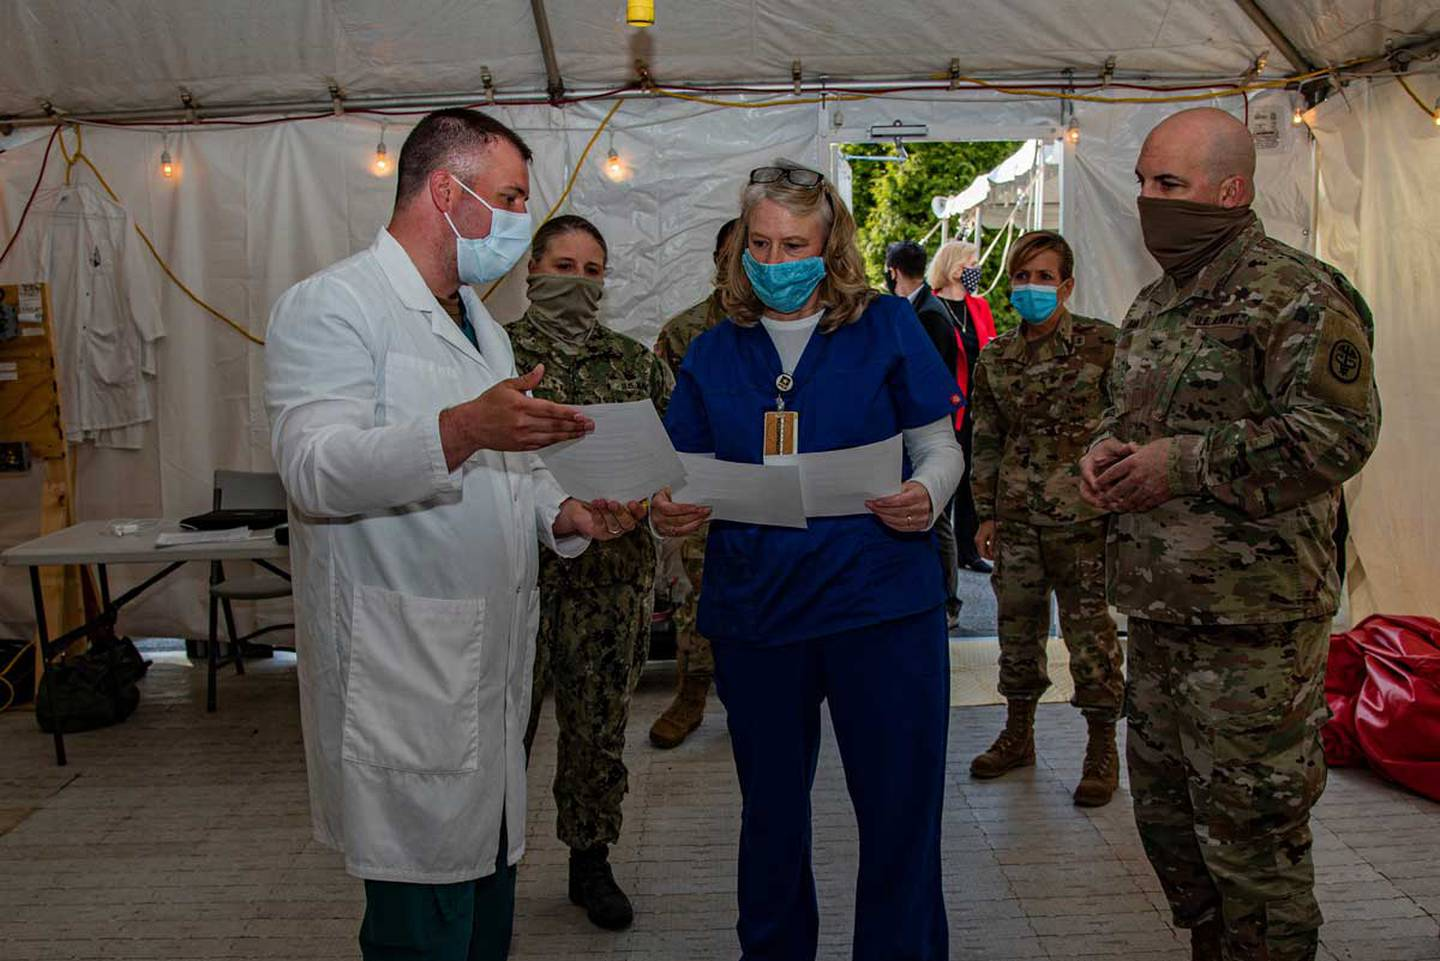 """A recent trip Hollyanne Milley made to Walter Reed to deliver cookies to nurses and clinicians there to say """"thank you,"""" and to get an update on care provided to wounded warriors and support to their caregivers. (Photo: Mass Communication Specialist 2nd Class Kurtis A. Hatcher/Navy)"""